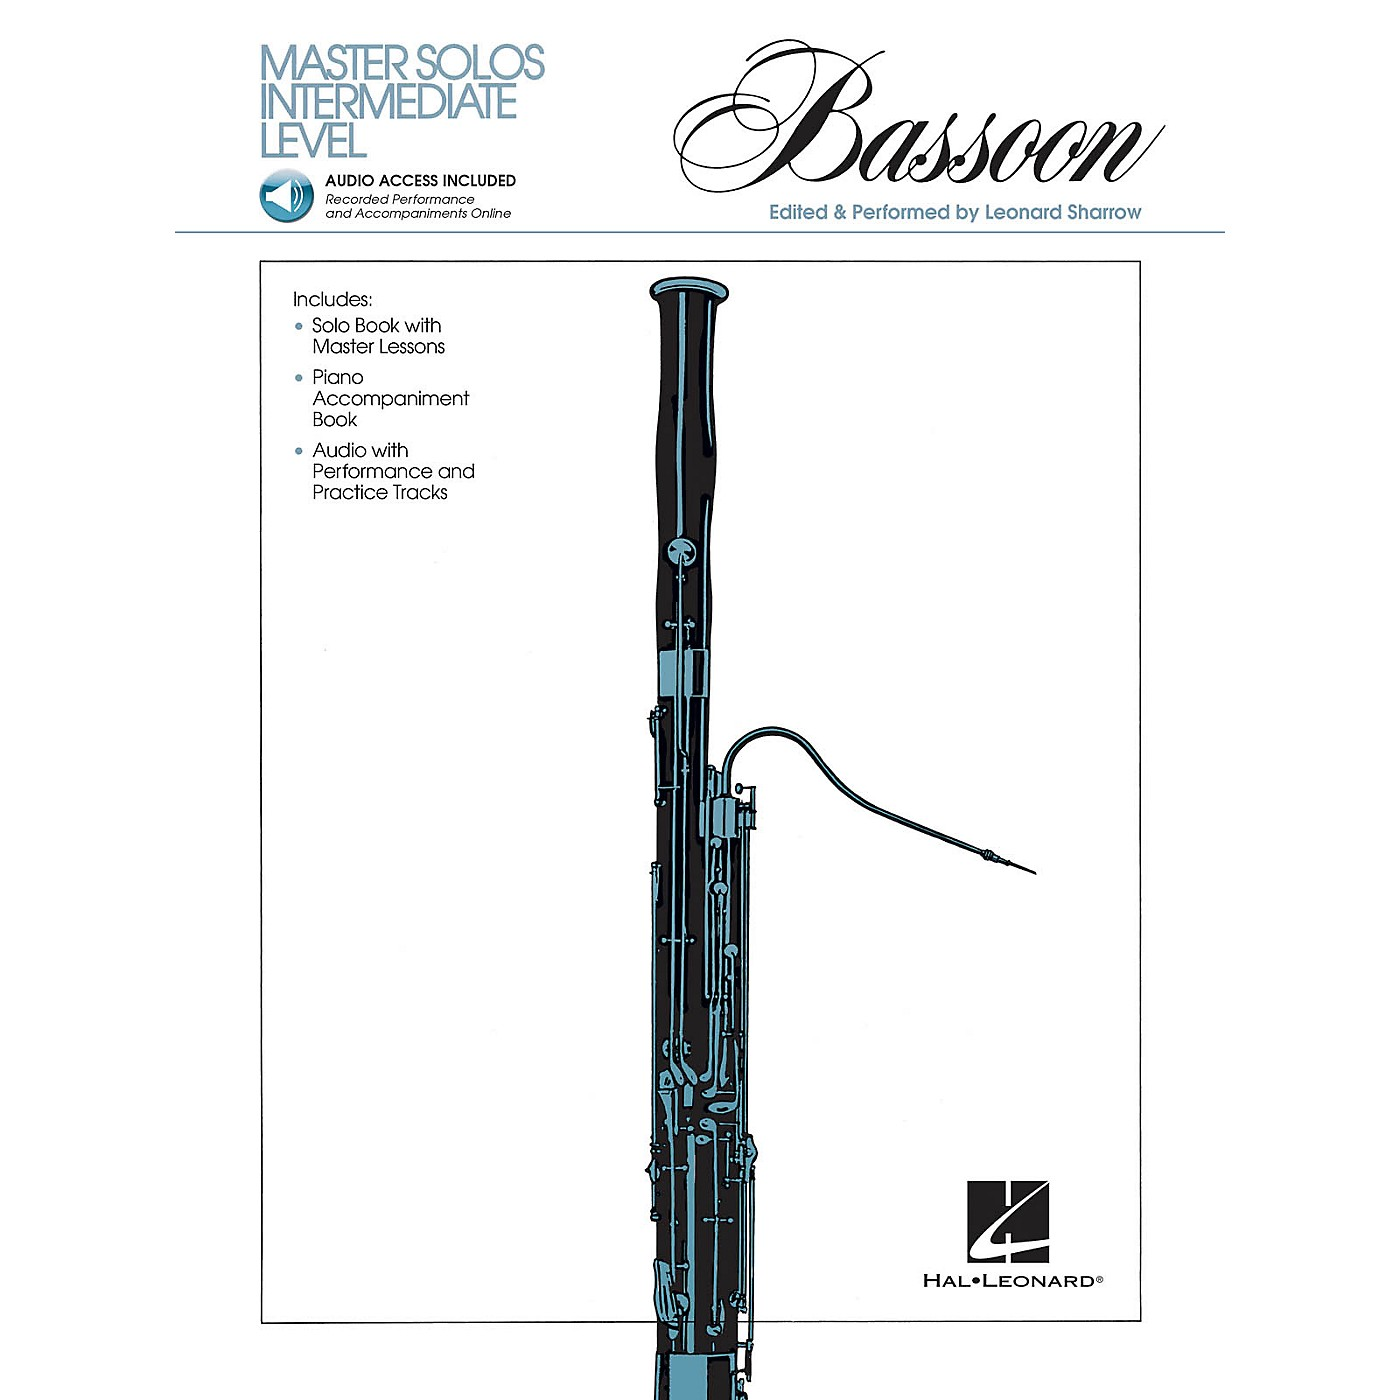 Hal Leonard Master Solos Intermediate Level - Bassoon (Book/CD Pack) Master Solos Series Softcover with CD thumbnail